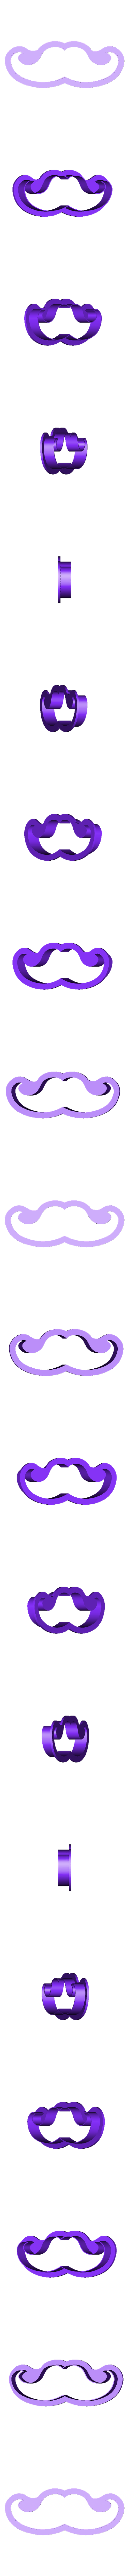 moustache.stl Download free STL file Cookie Cutter • 3D print design, leFabShop